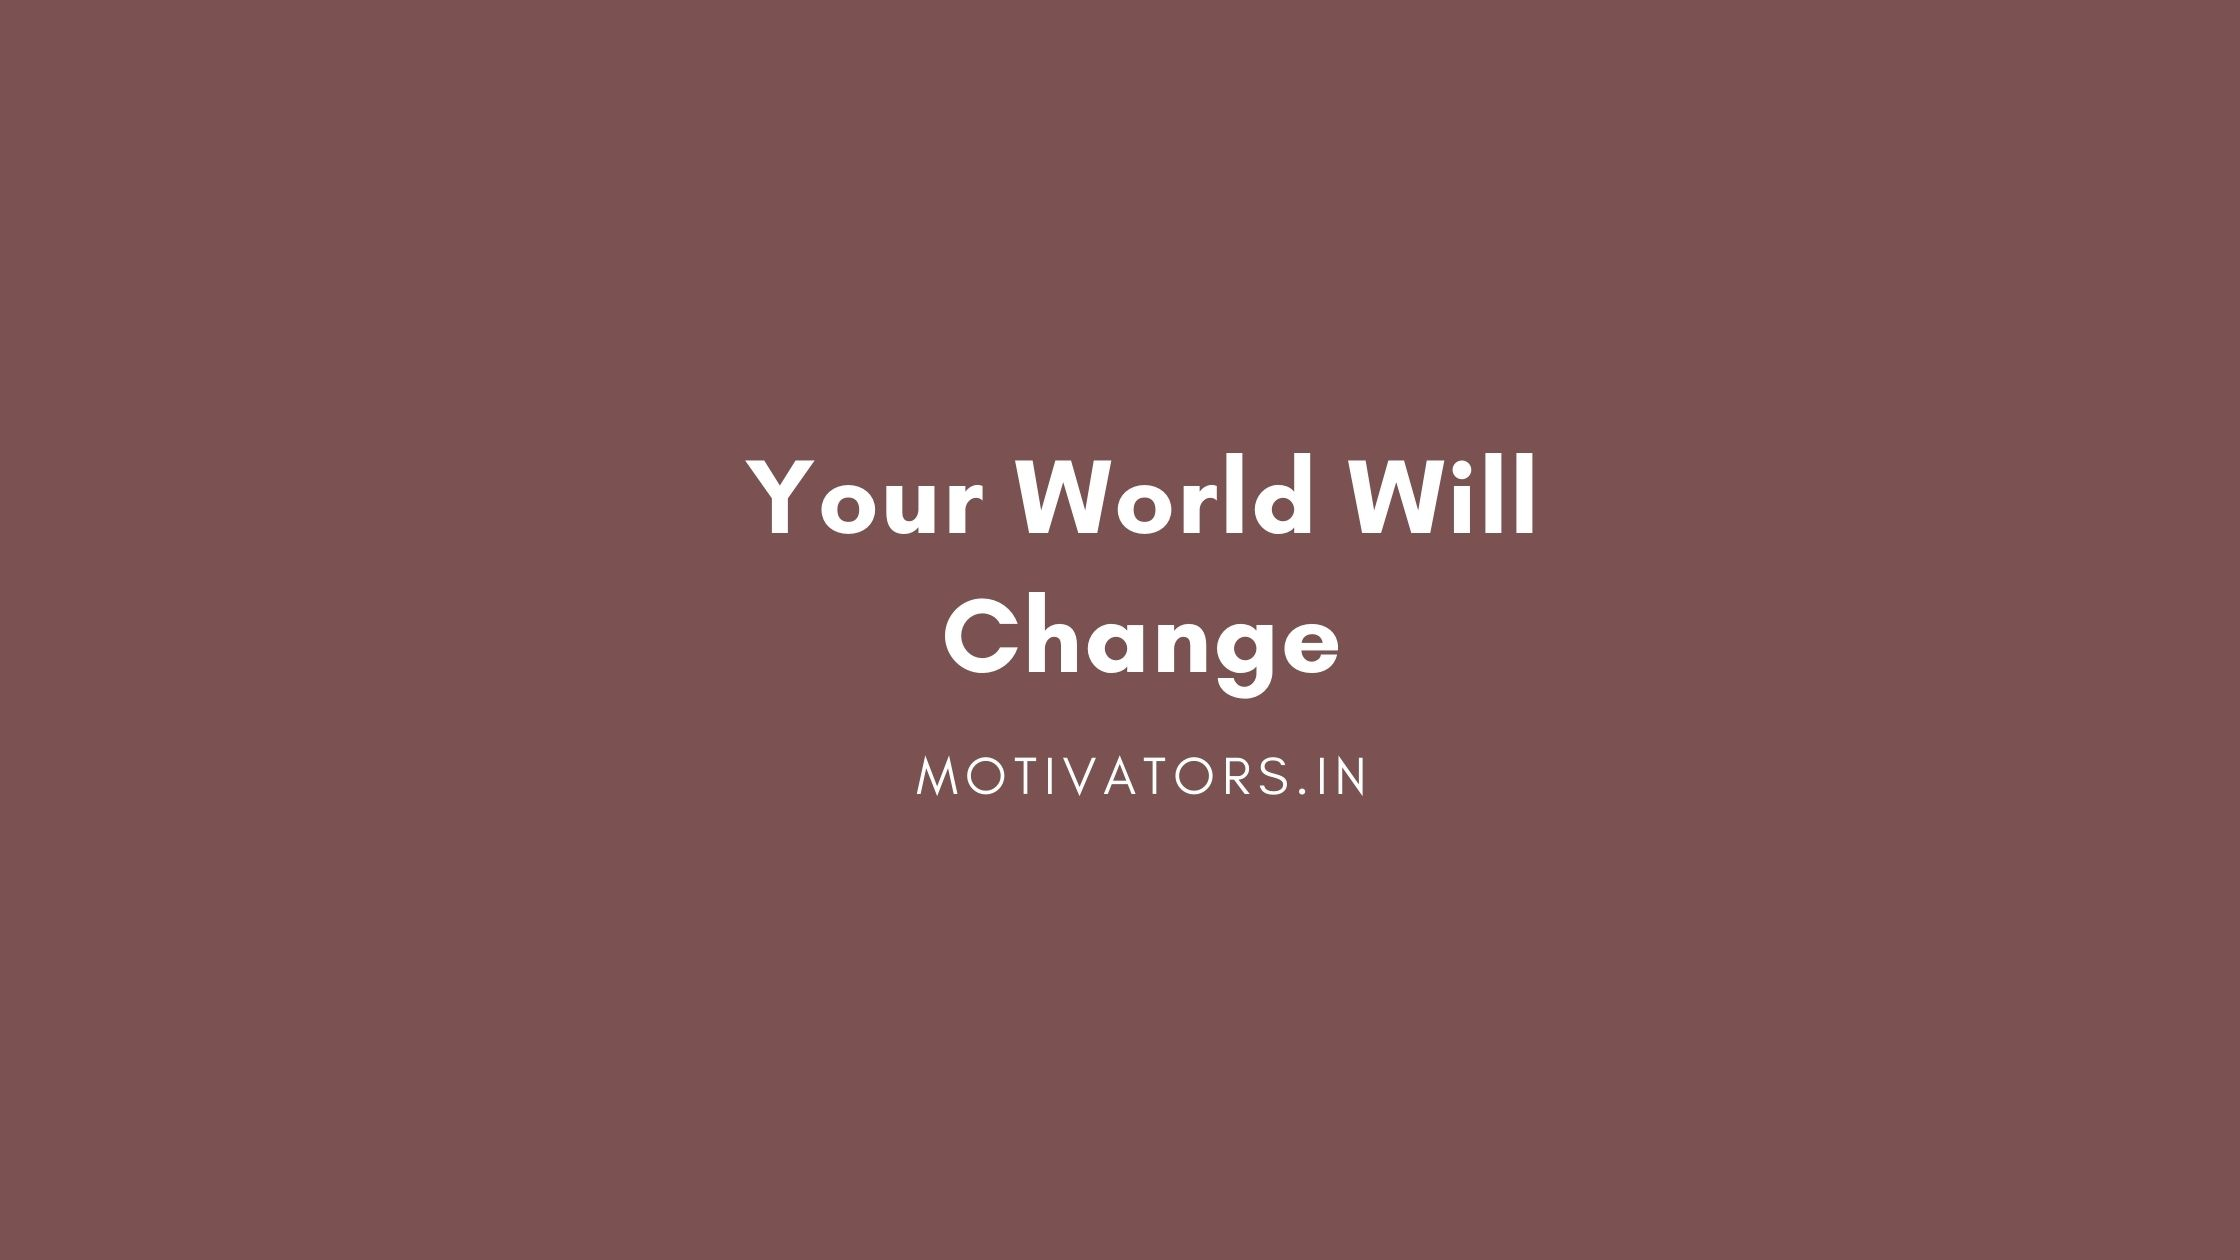 Your World Will Change